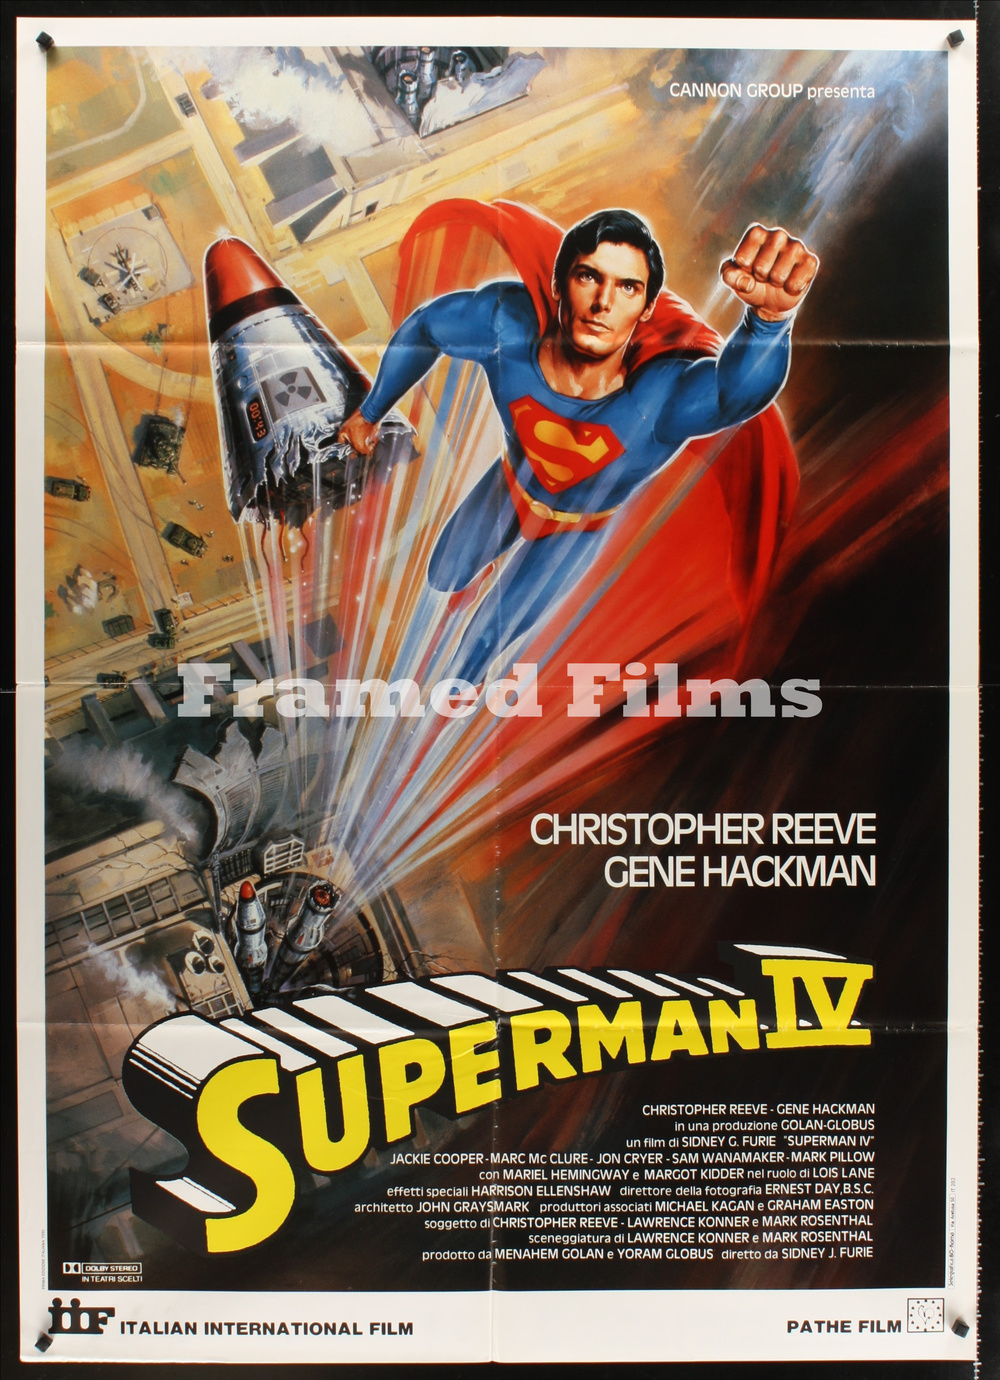 italian_1p_superman_IV_JC01261_L.jpg